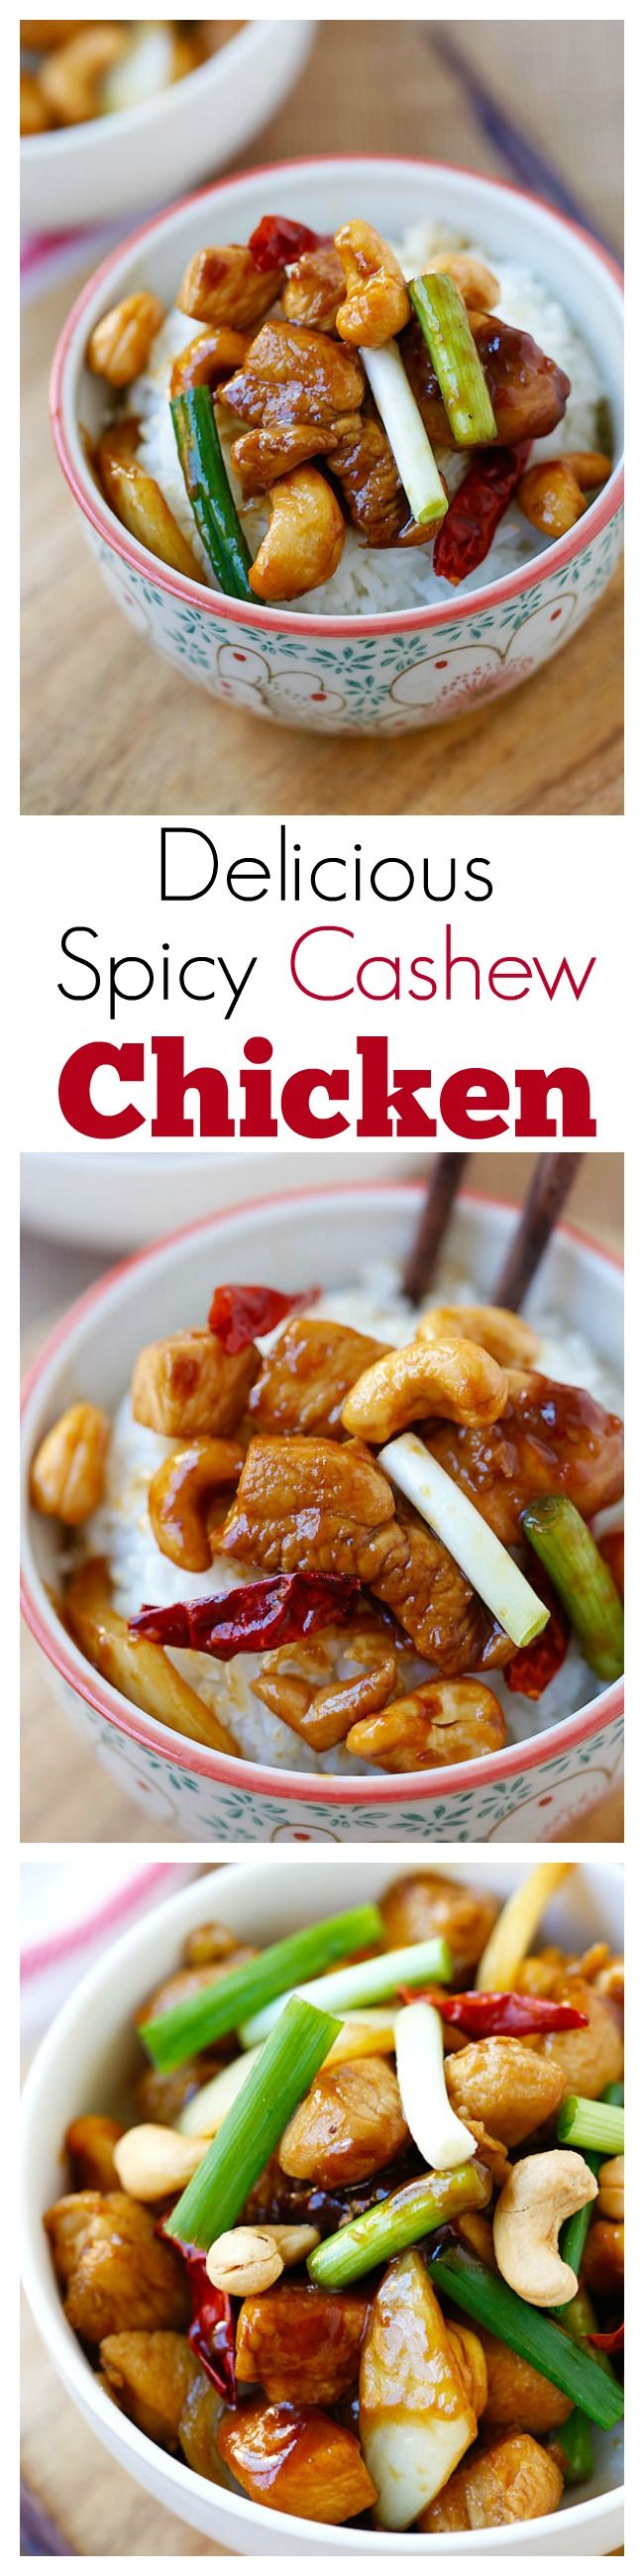 Spicy Cashew Chicken – easy and delicious chicken with cashew nuts with just the right amount of heat. Takes 20 mins to make and much better than takeout | rasamalaysia.com